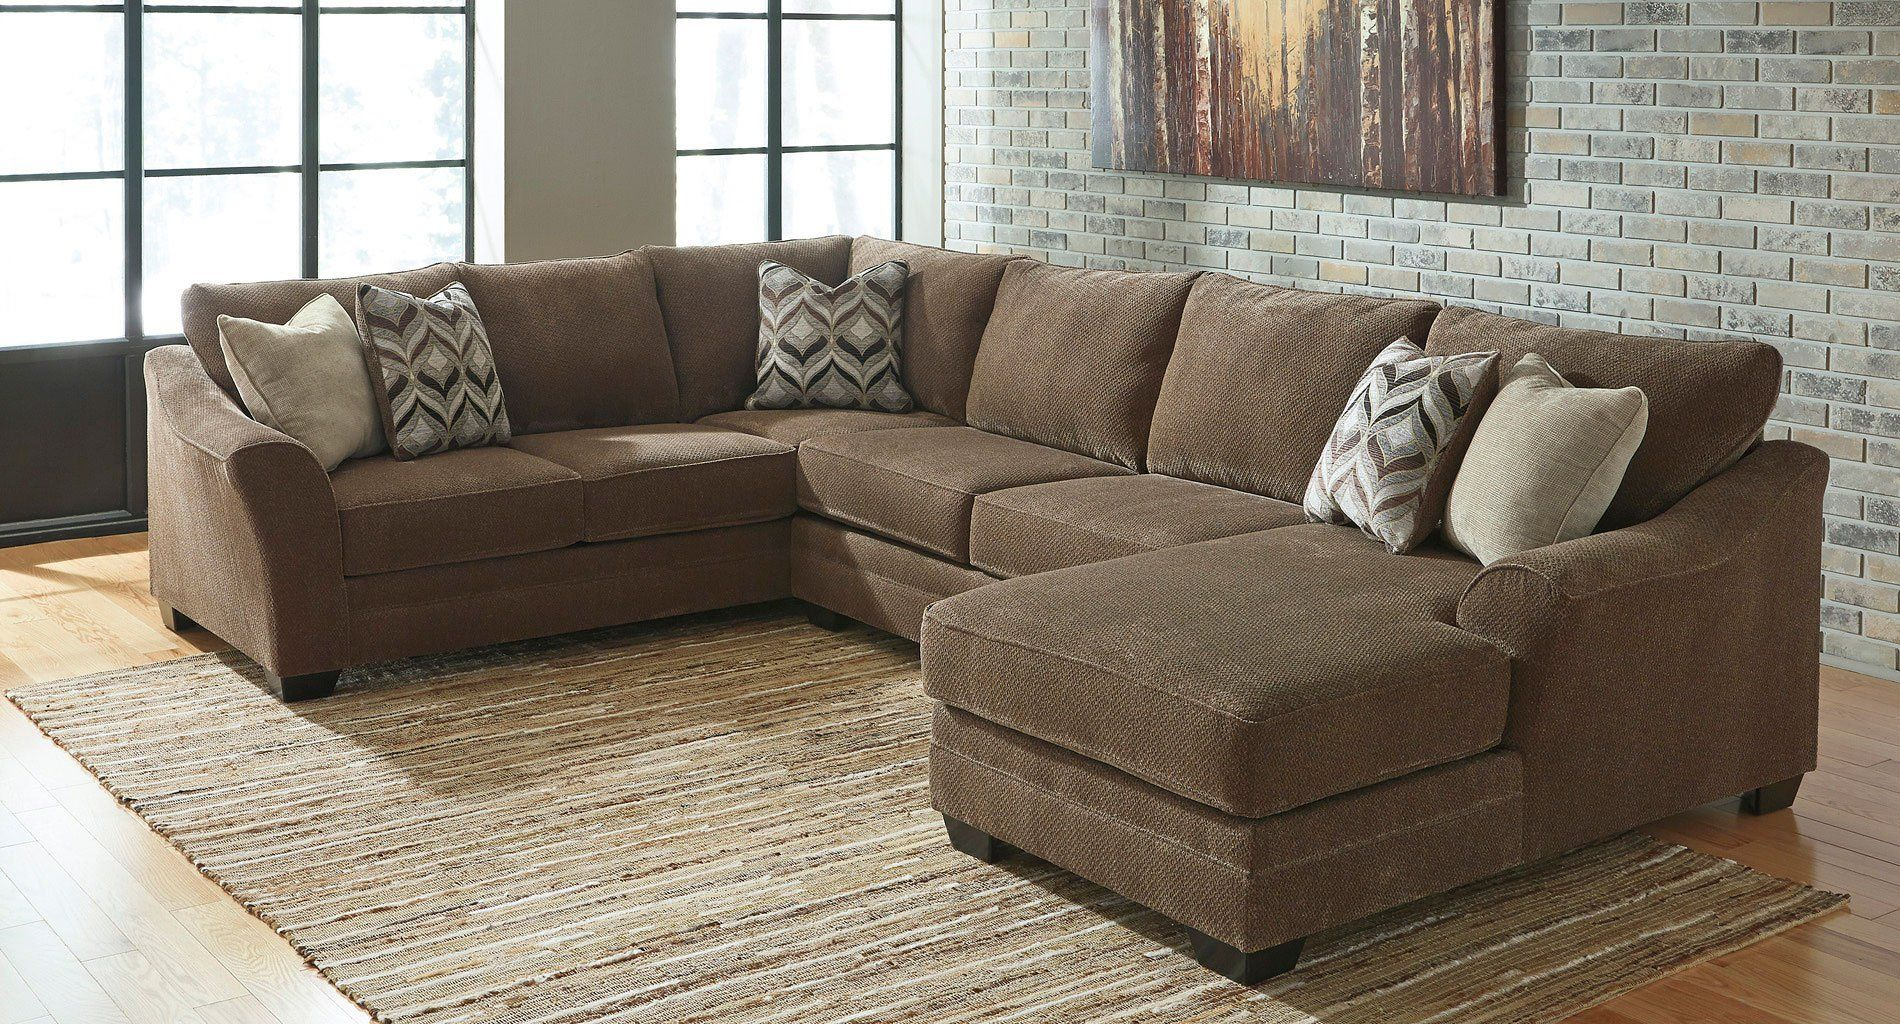 Justyna Teak Right Chaise Sectional Furniture 3 Piece Sectional Sofa Living Room Furniture #sectional #living #room #suit